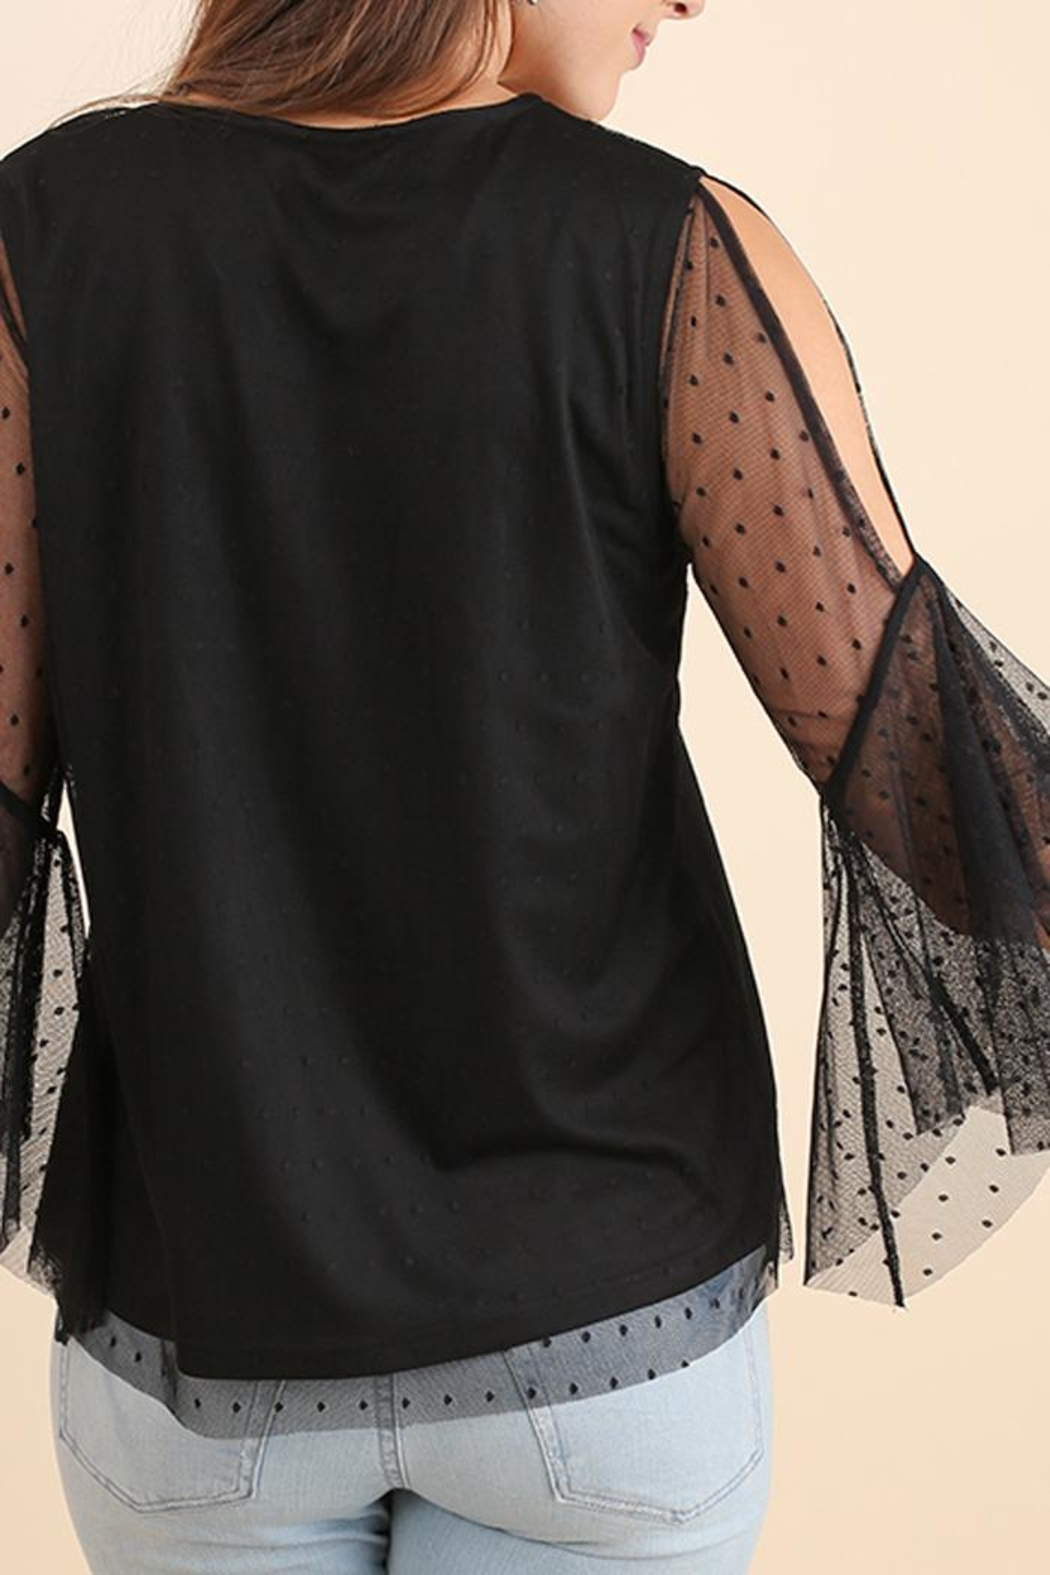 Umgee USA Black Embroidered Top - Front Full Image